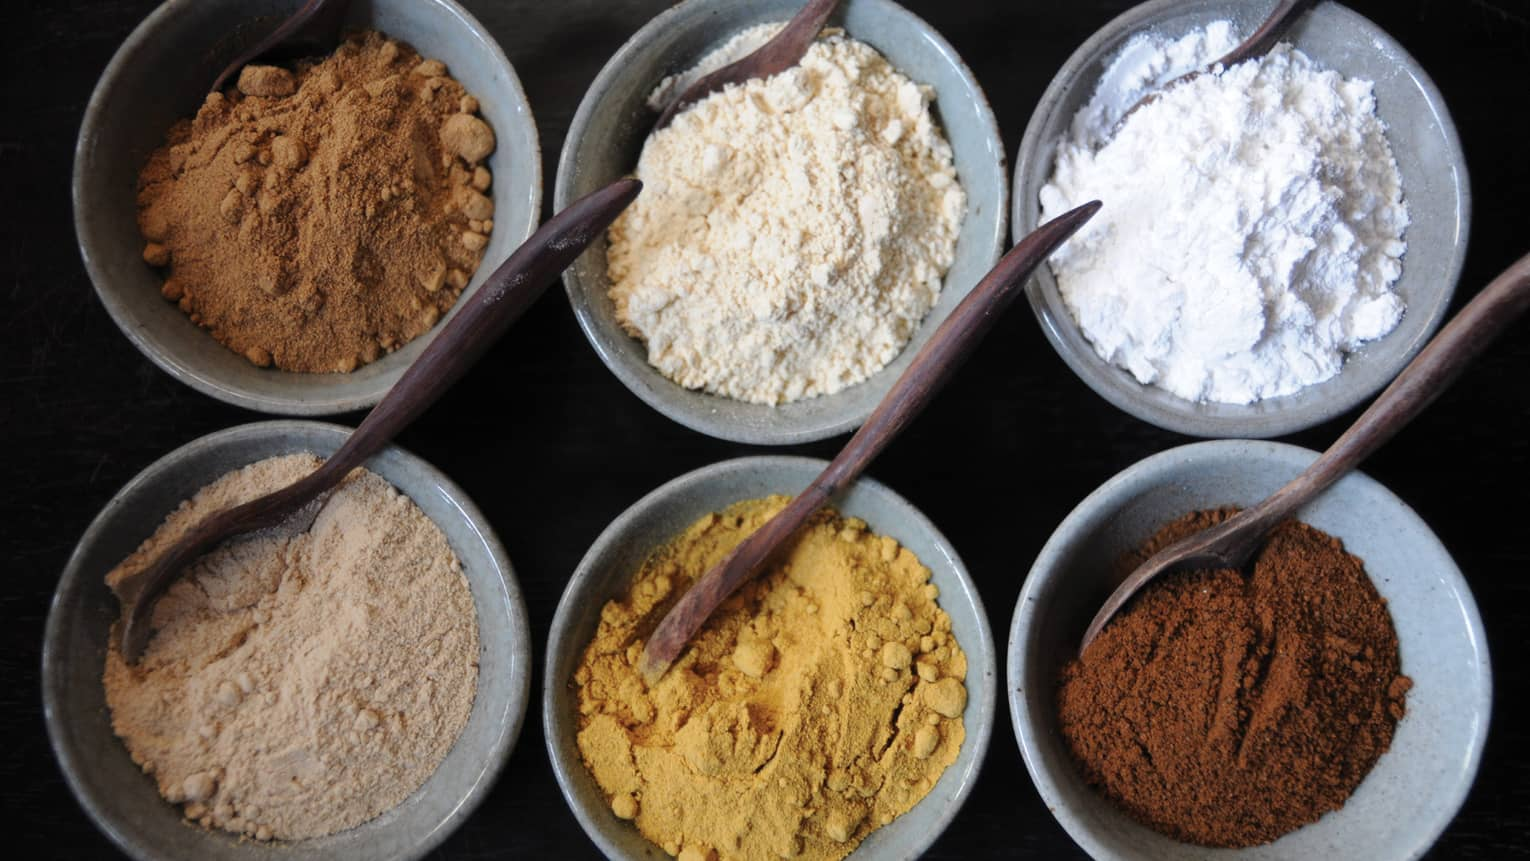 Aerial view of small spa bowls with powdered spices, clays, wood spoons